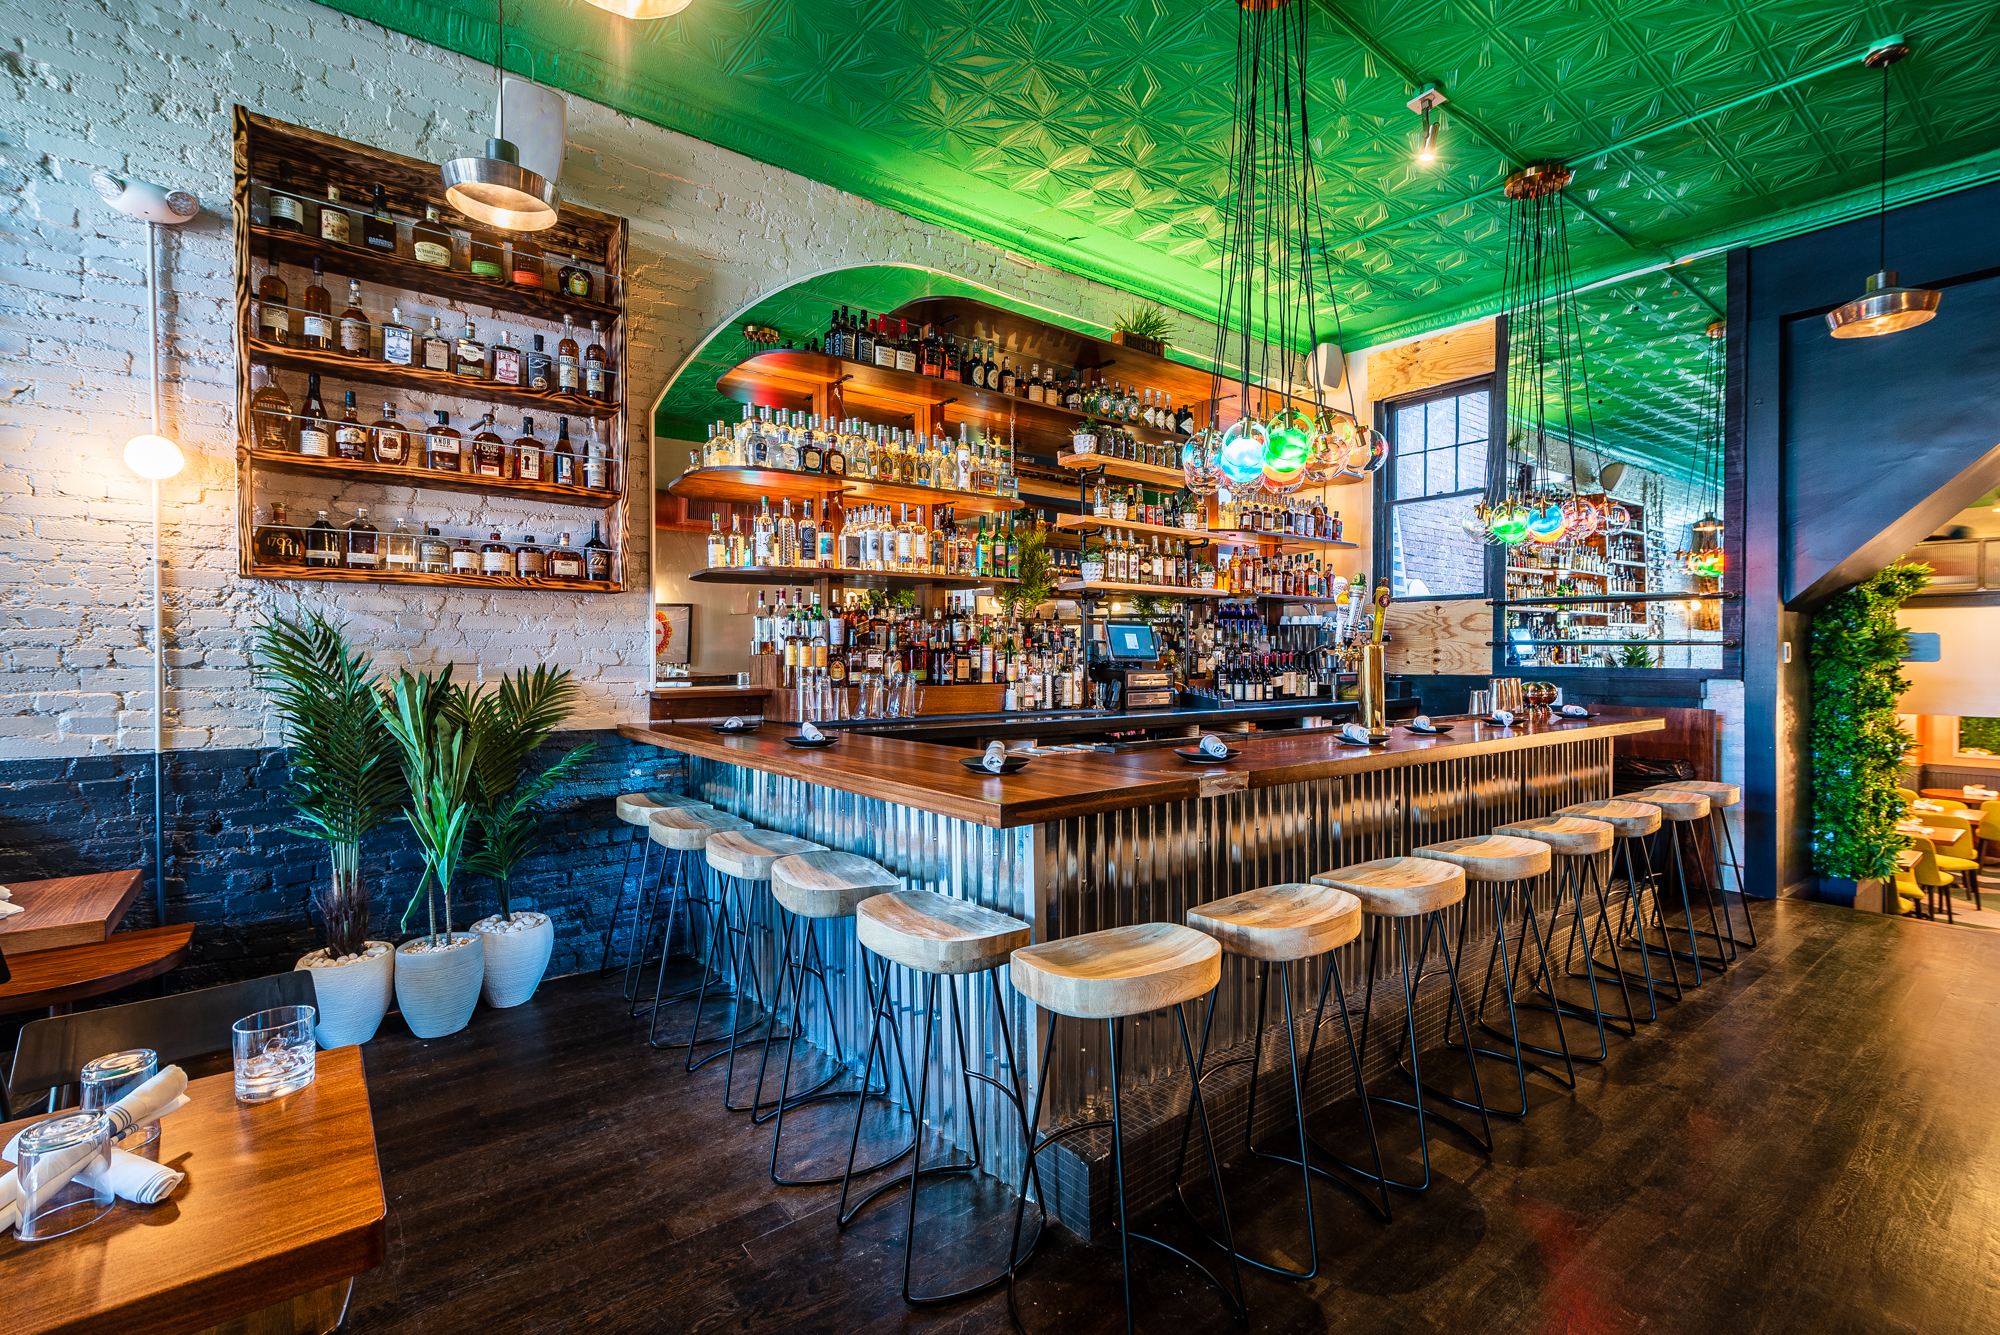 NYC's Mexicue Opens a Plant-Filled D.C. Restaurant Selling Southern-Inflected Tacos